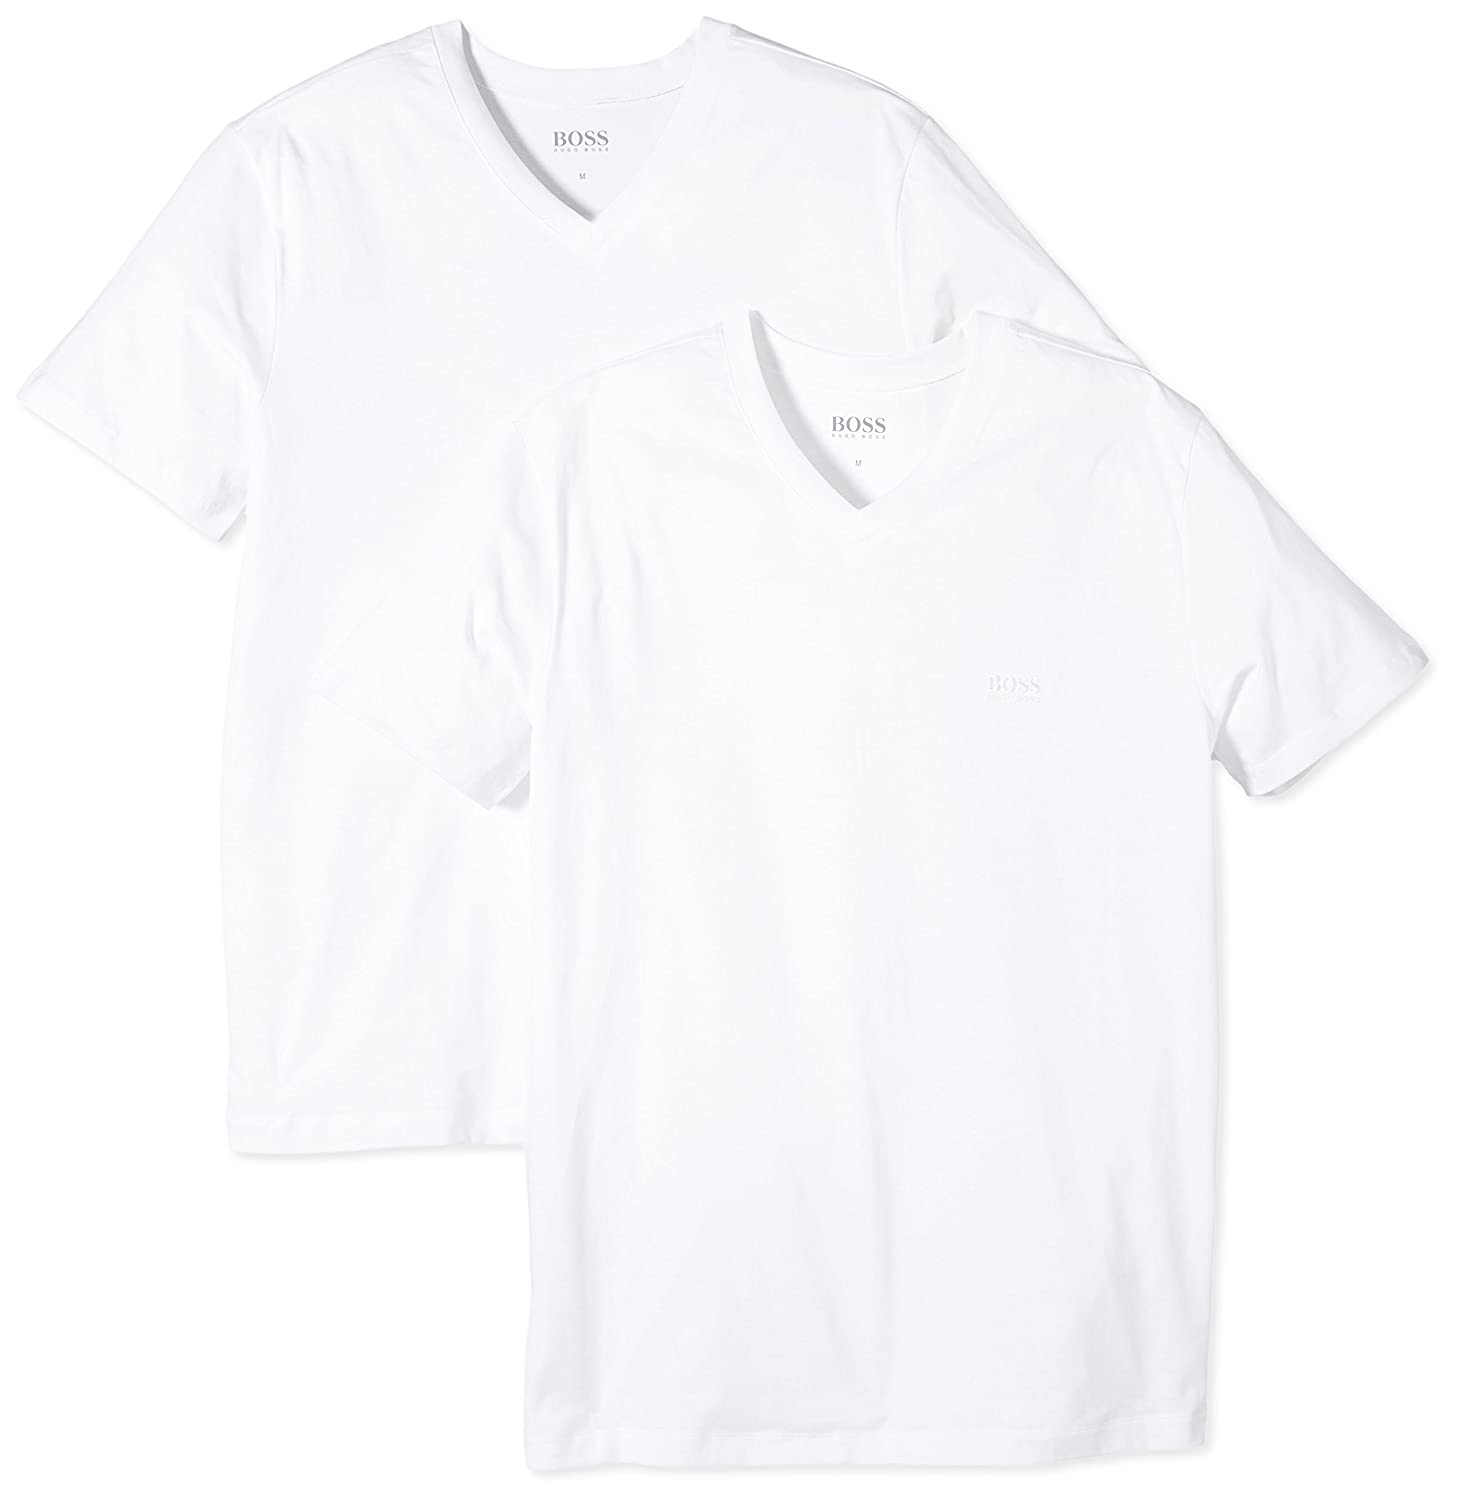 BOSS Hugo Boss Men's Shirt SS VN 2p BM 10111875 02 Short Sleeve T-Shirt:  Amazon.co.uk: Clothing